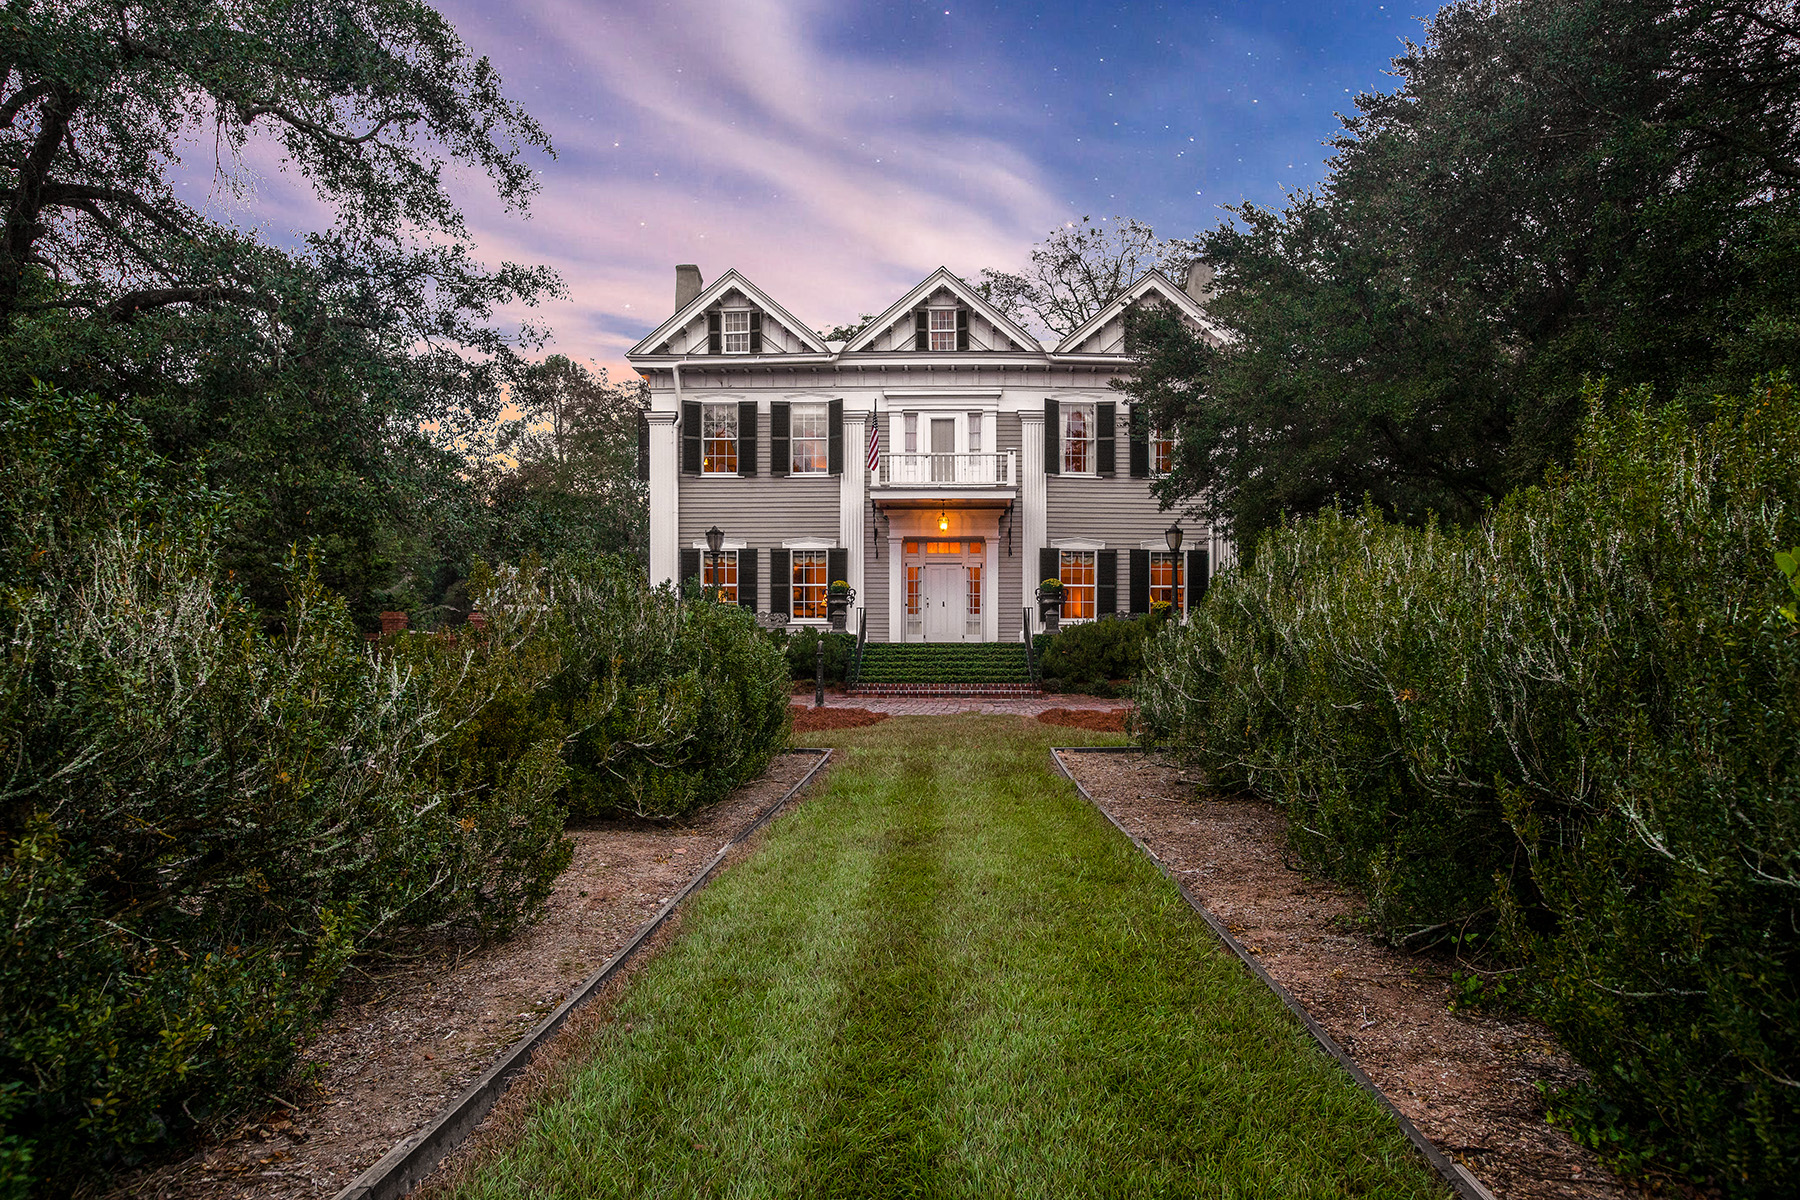 Single Family Home for Sale at Restored 1818 Home! One of The Most Distinguished Properties Of The South! 847 Dixie Avenue Madison, Georgia 30650 United States